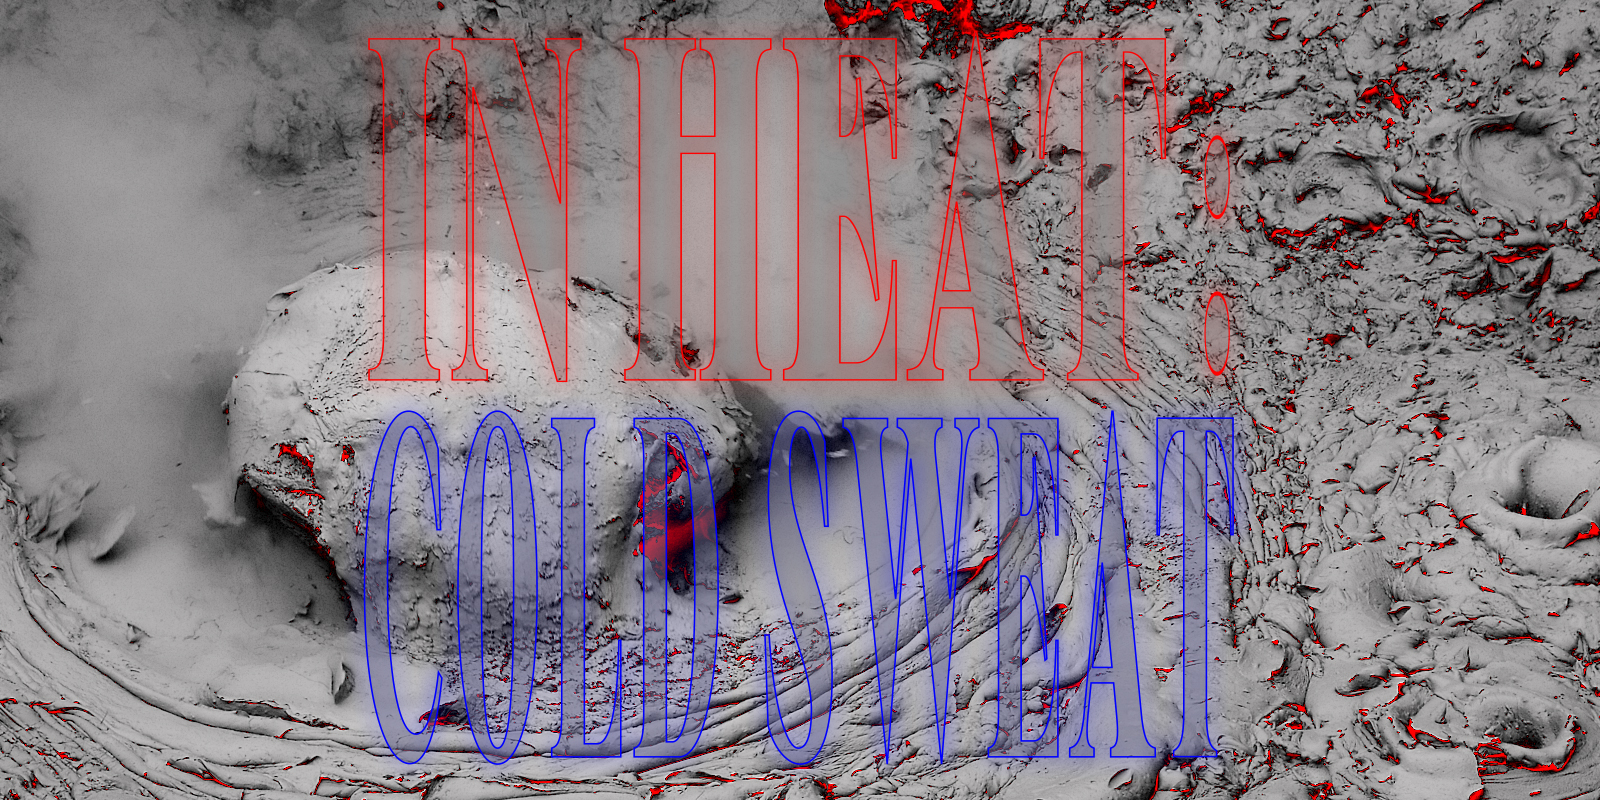 "This is a banner for Coven Berlin's online event called In Heat: Cold Sweat. By clicking on it you will get to another website, the Cyberbog. The background of the image consists of a gray rendering of lava with some red glowing spots and steam. The words ""In Heat"" have red glowing outline, ""Cold Sweat"" a blue glowing outline."